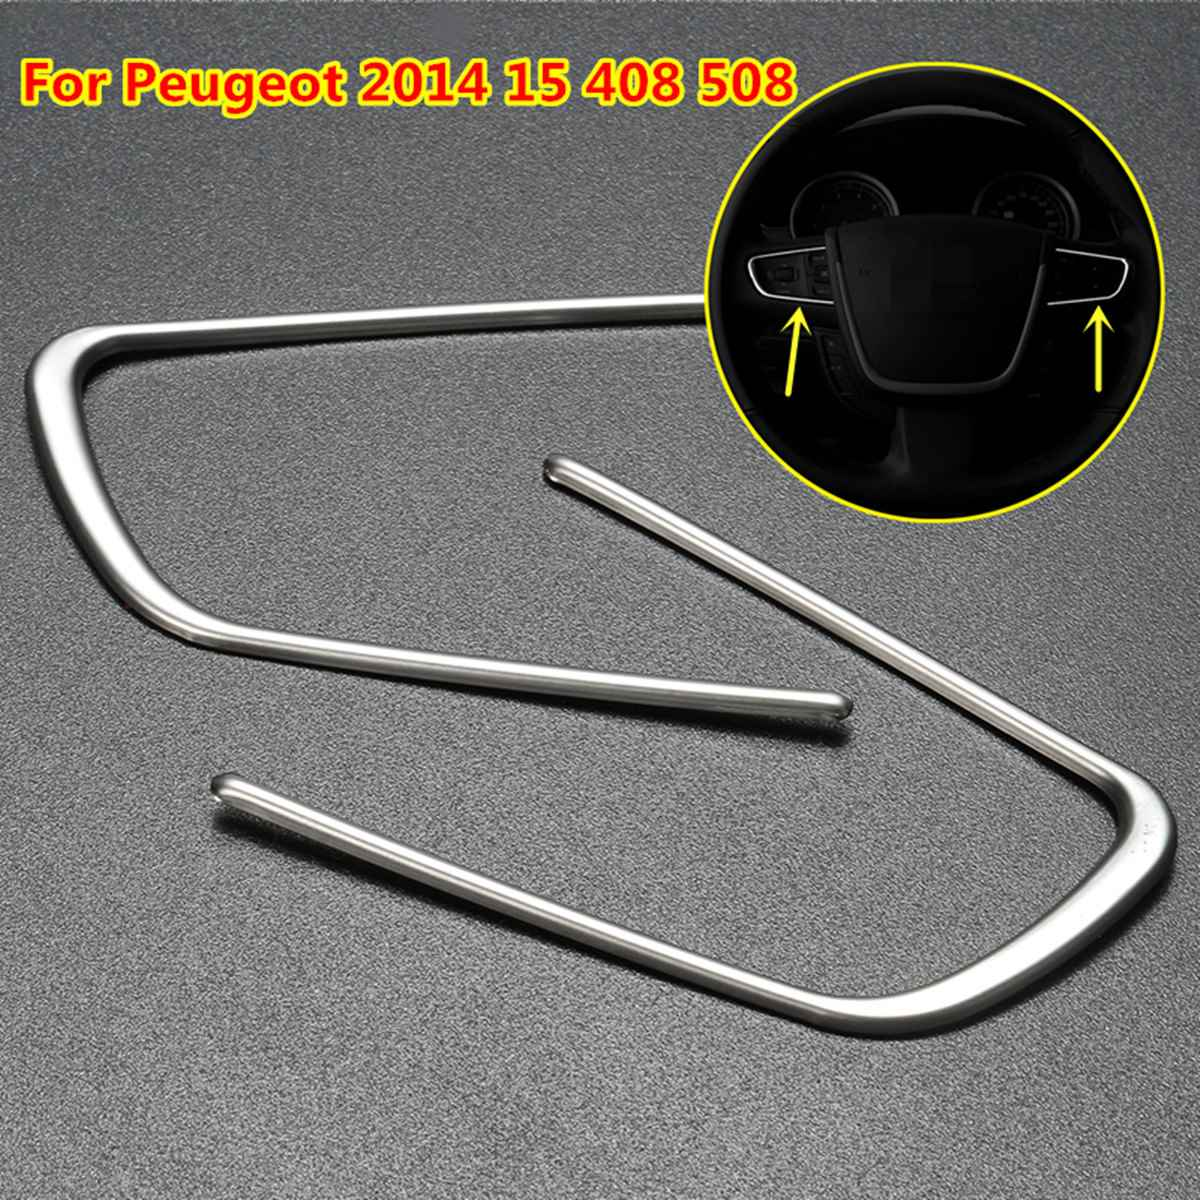 1 Pair Car Steering Wheel Cover Mouldings Trim Strip Styling Sticker For Peugeot 2014 15 408 508